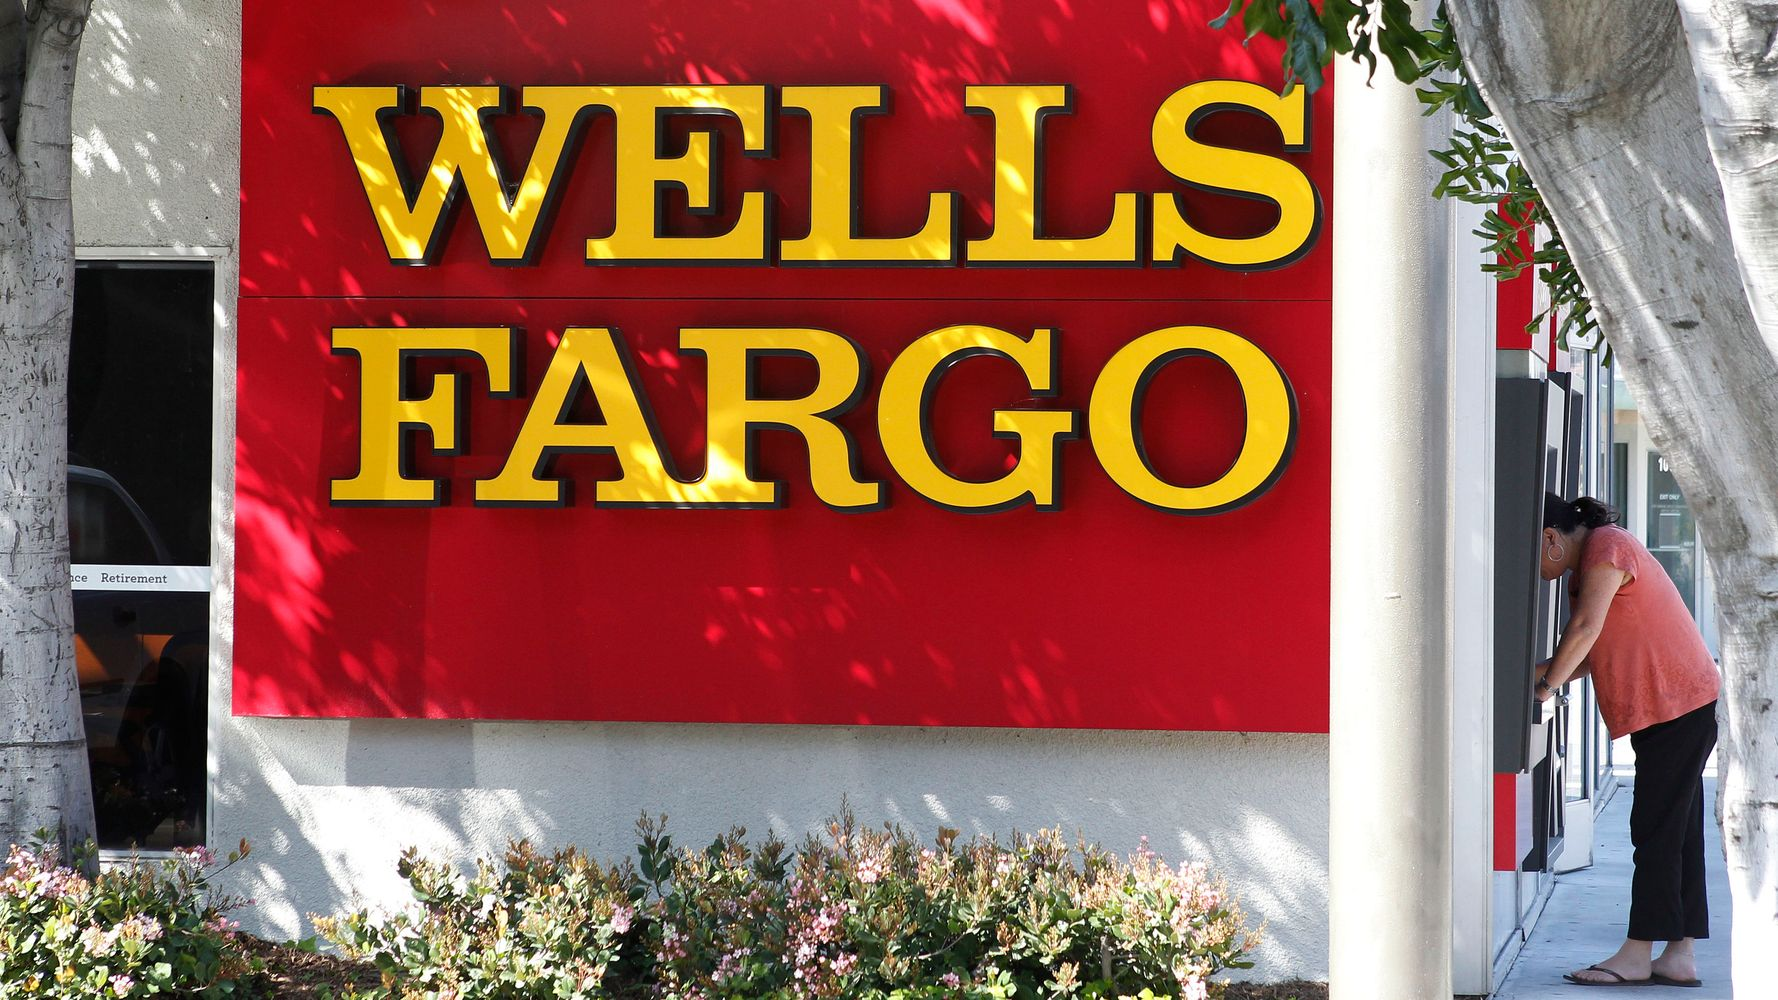 Report: Wells Fargo Bankers Overcharged Hundreds In Latest Scandal